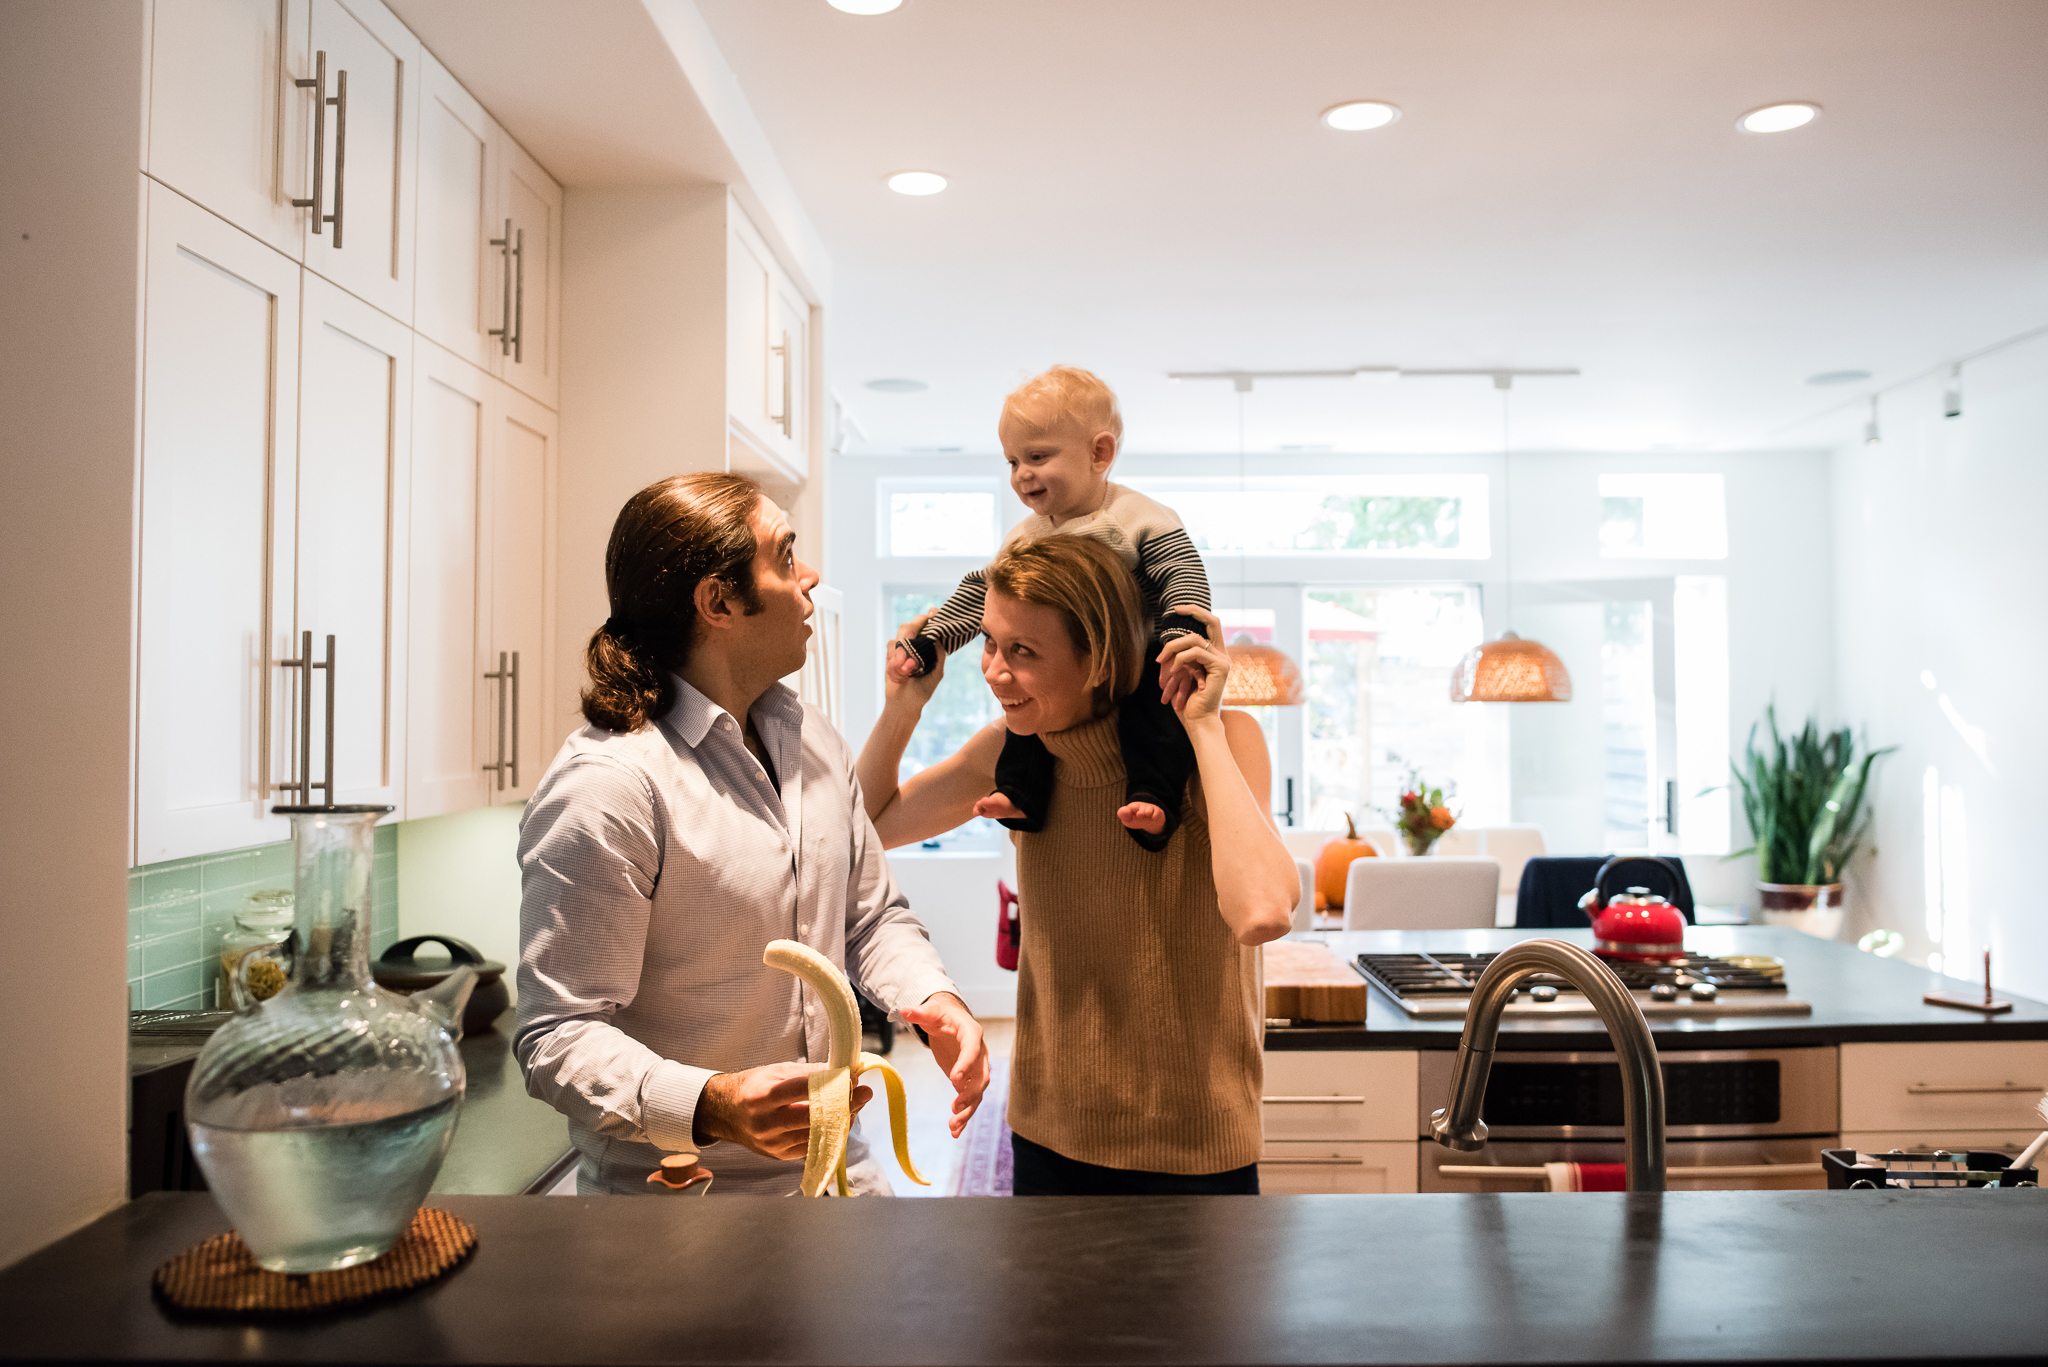 Mom and Dad playing with Baby in Washington, DC kitchen by Family Photographer Nicole Sanchez